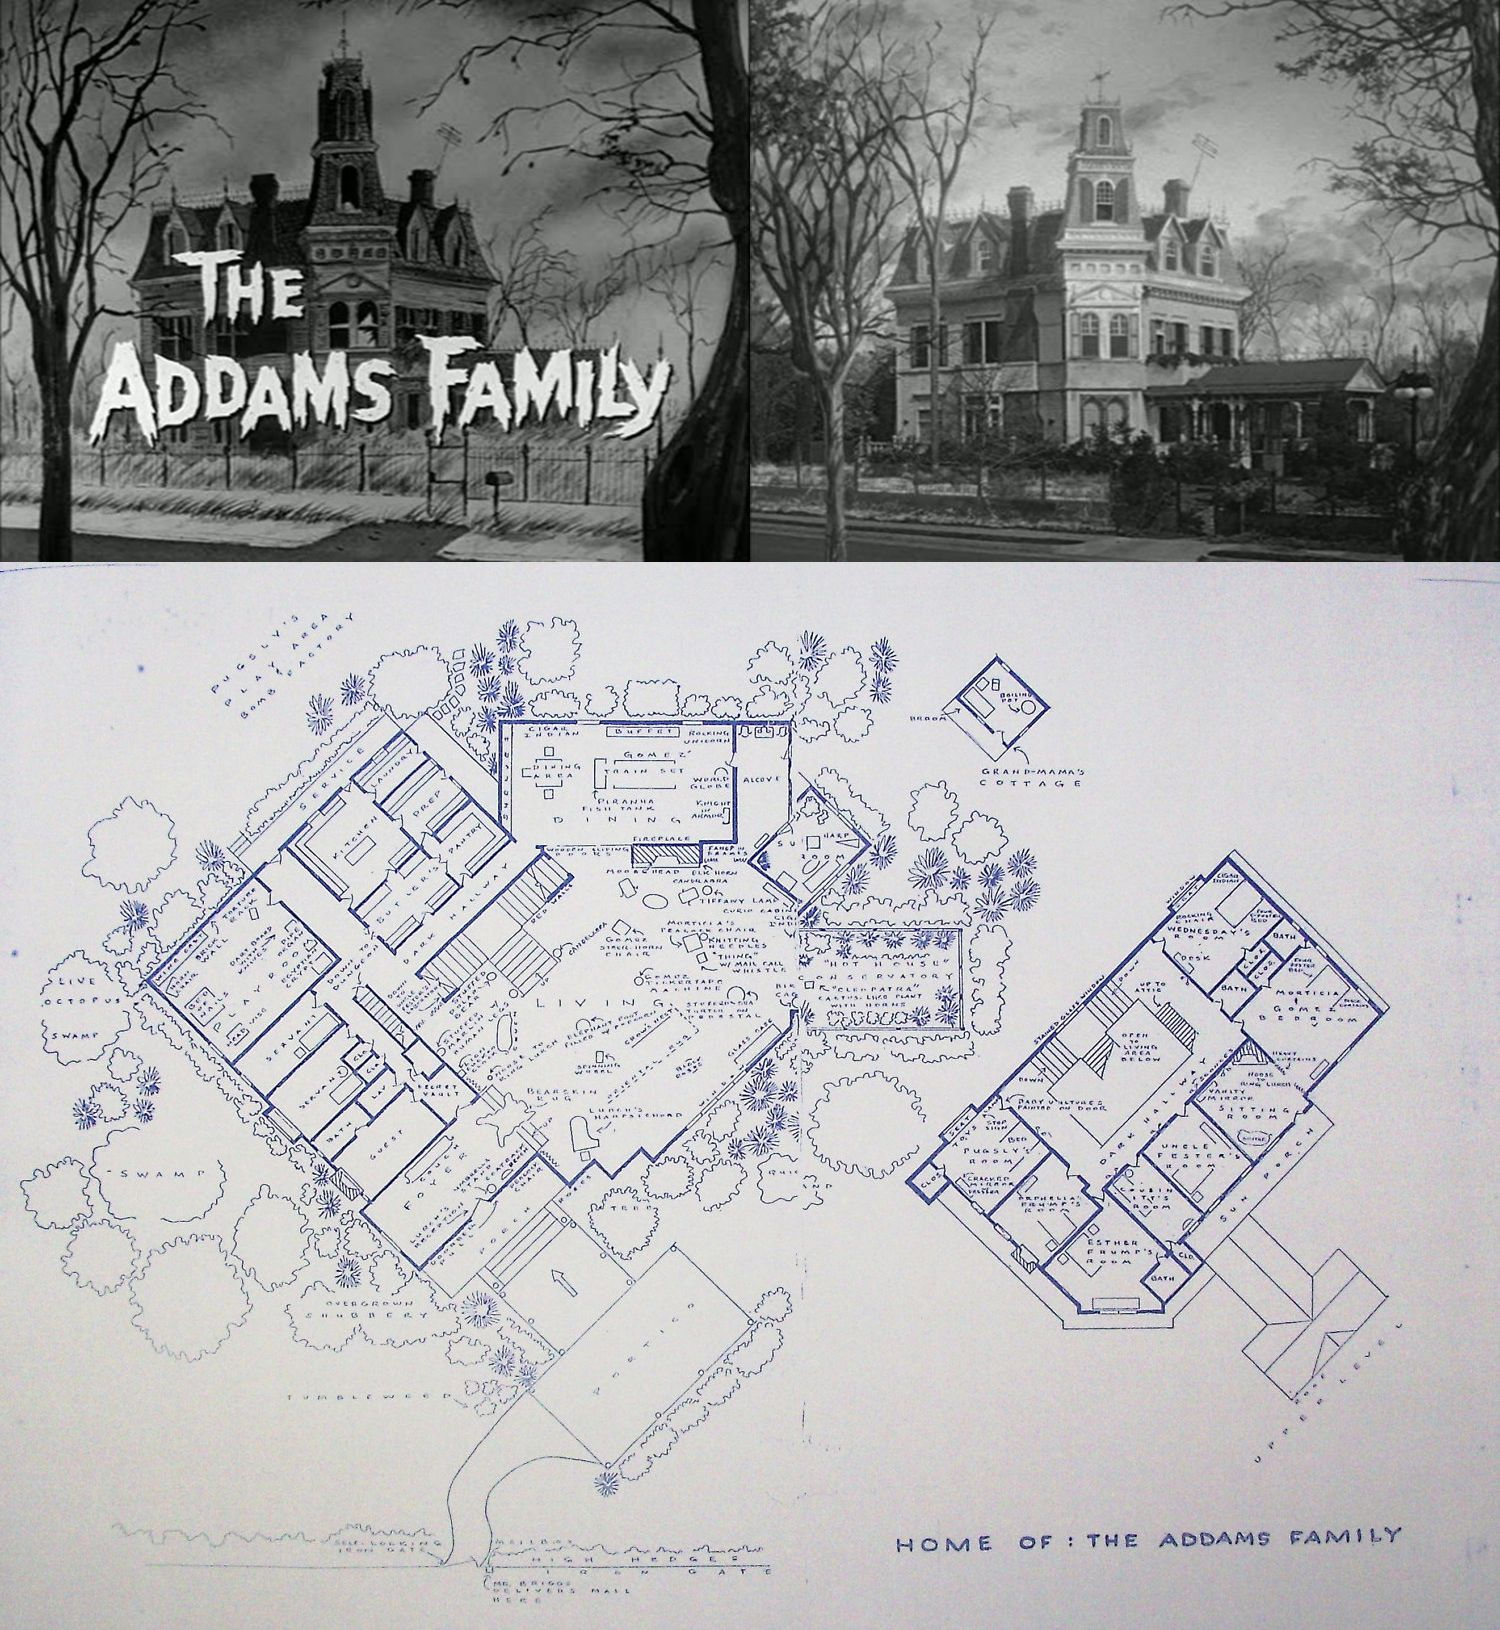 The addams family home at 0001 cemetery lane blueprints floor the addams family home at 0001 cemetery lane blueprints floor plan malvernweather Image collections